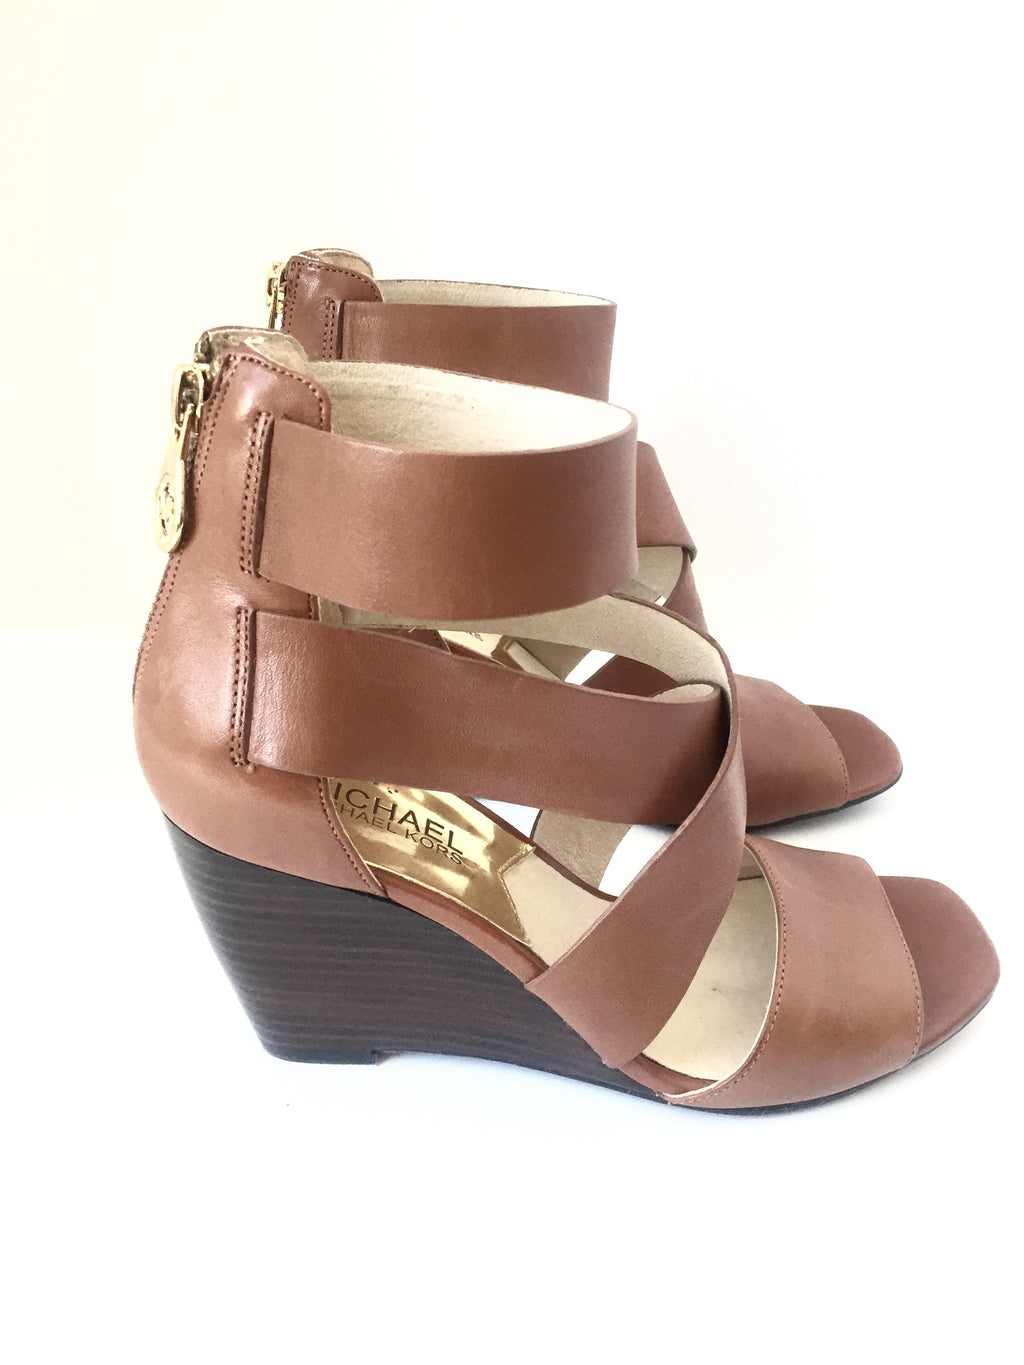 Michael Kors Elena Brown Leather Wedge Sandals Size 6